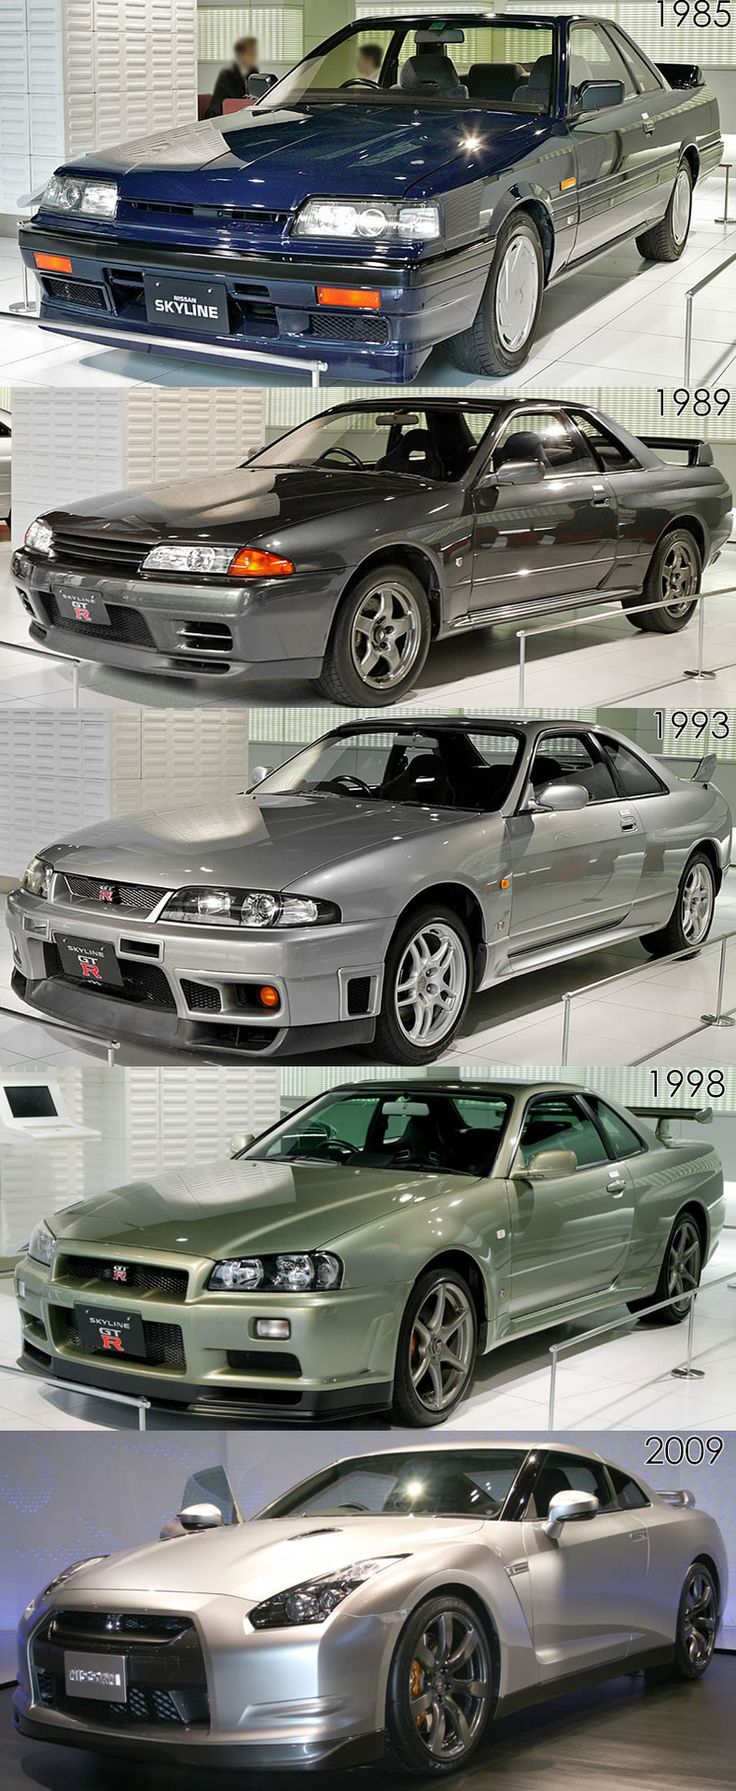 Nissans Skyline family tree. I'd own any and all of them! These are at the top of the Automotive food chain, if you ask me.